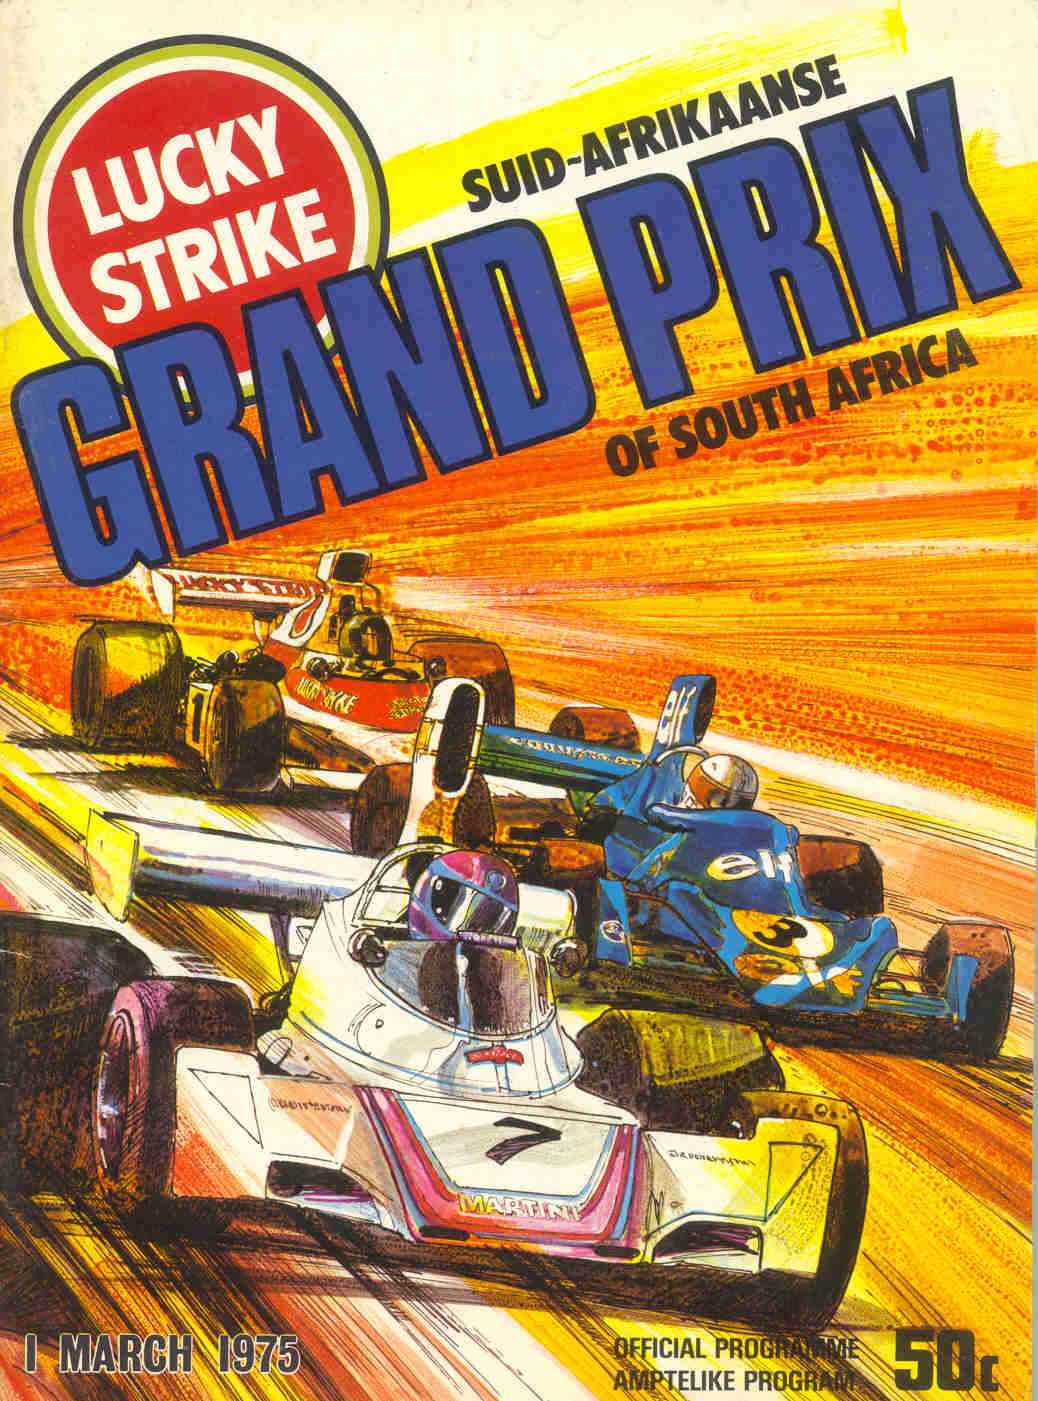 2015 Can Am >> 1975 Formula 1 World Championship Programmes   The Motor Racing Programme Covers Project